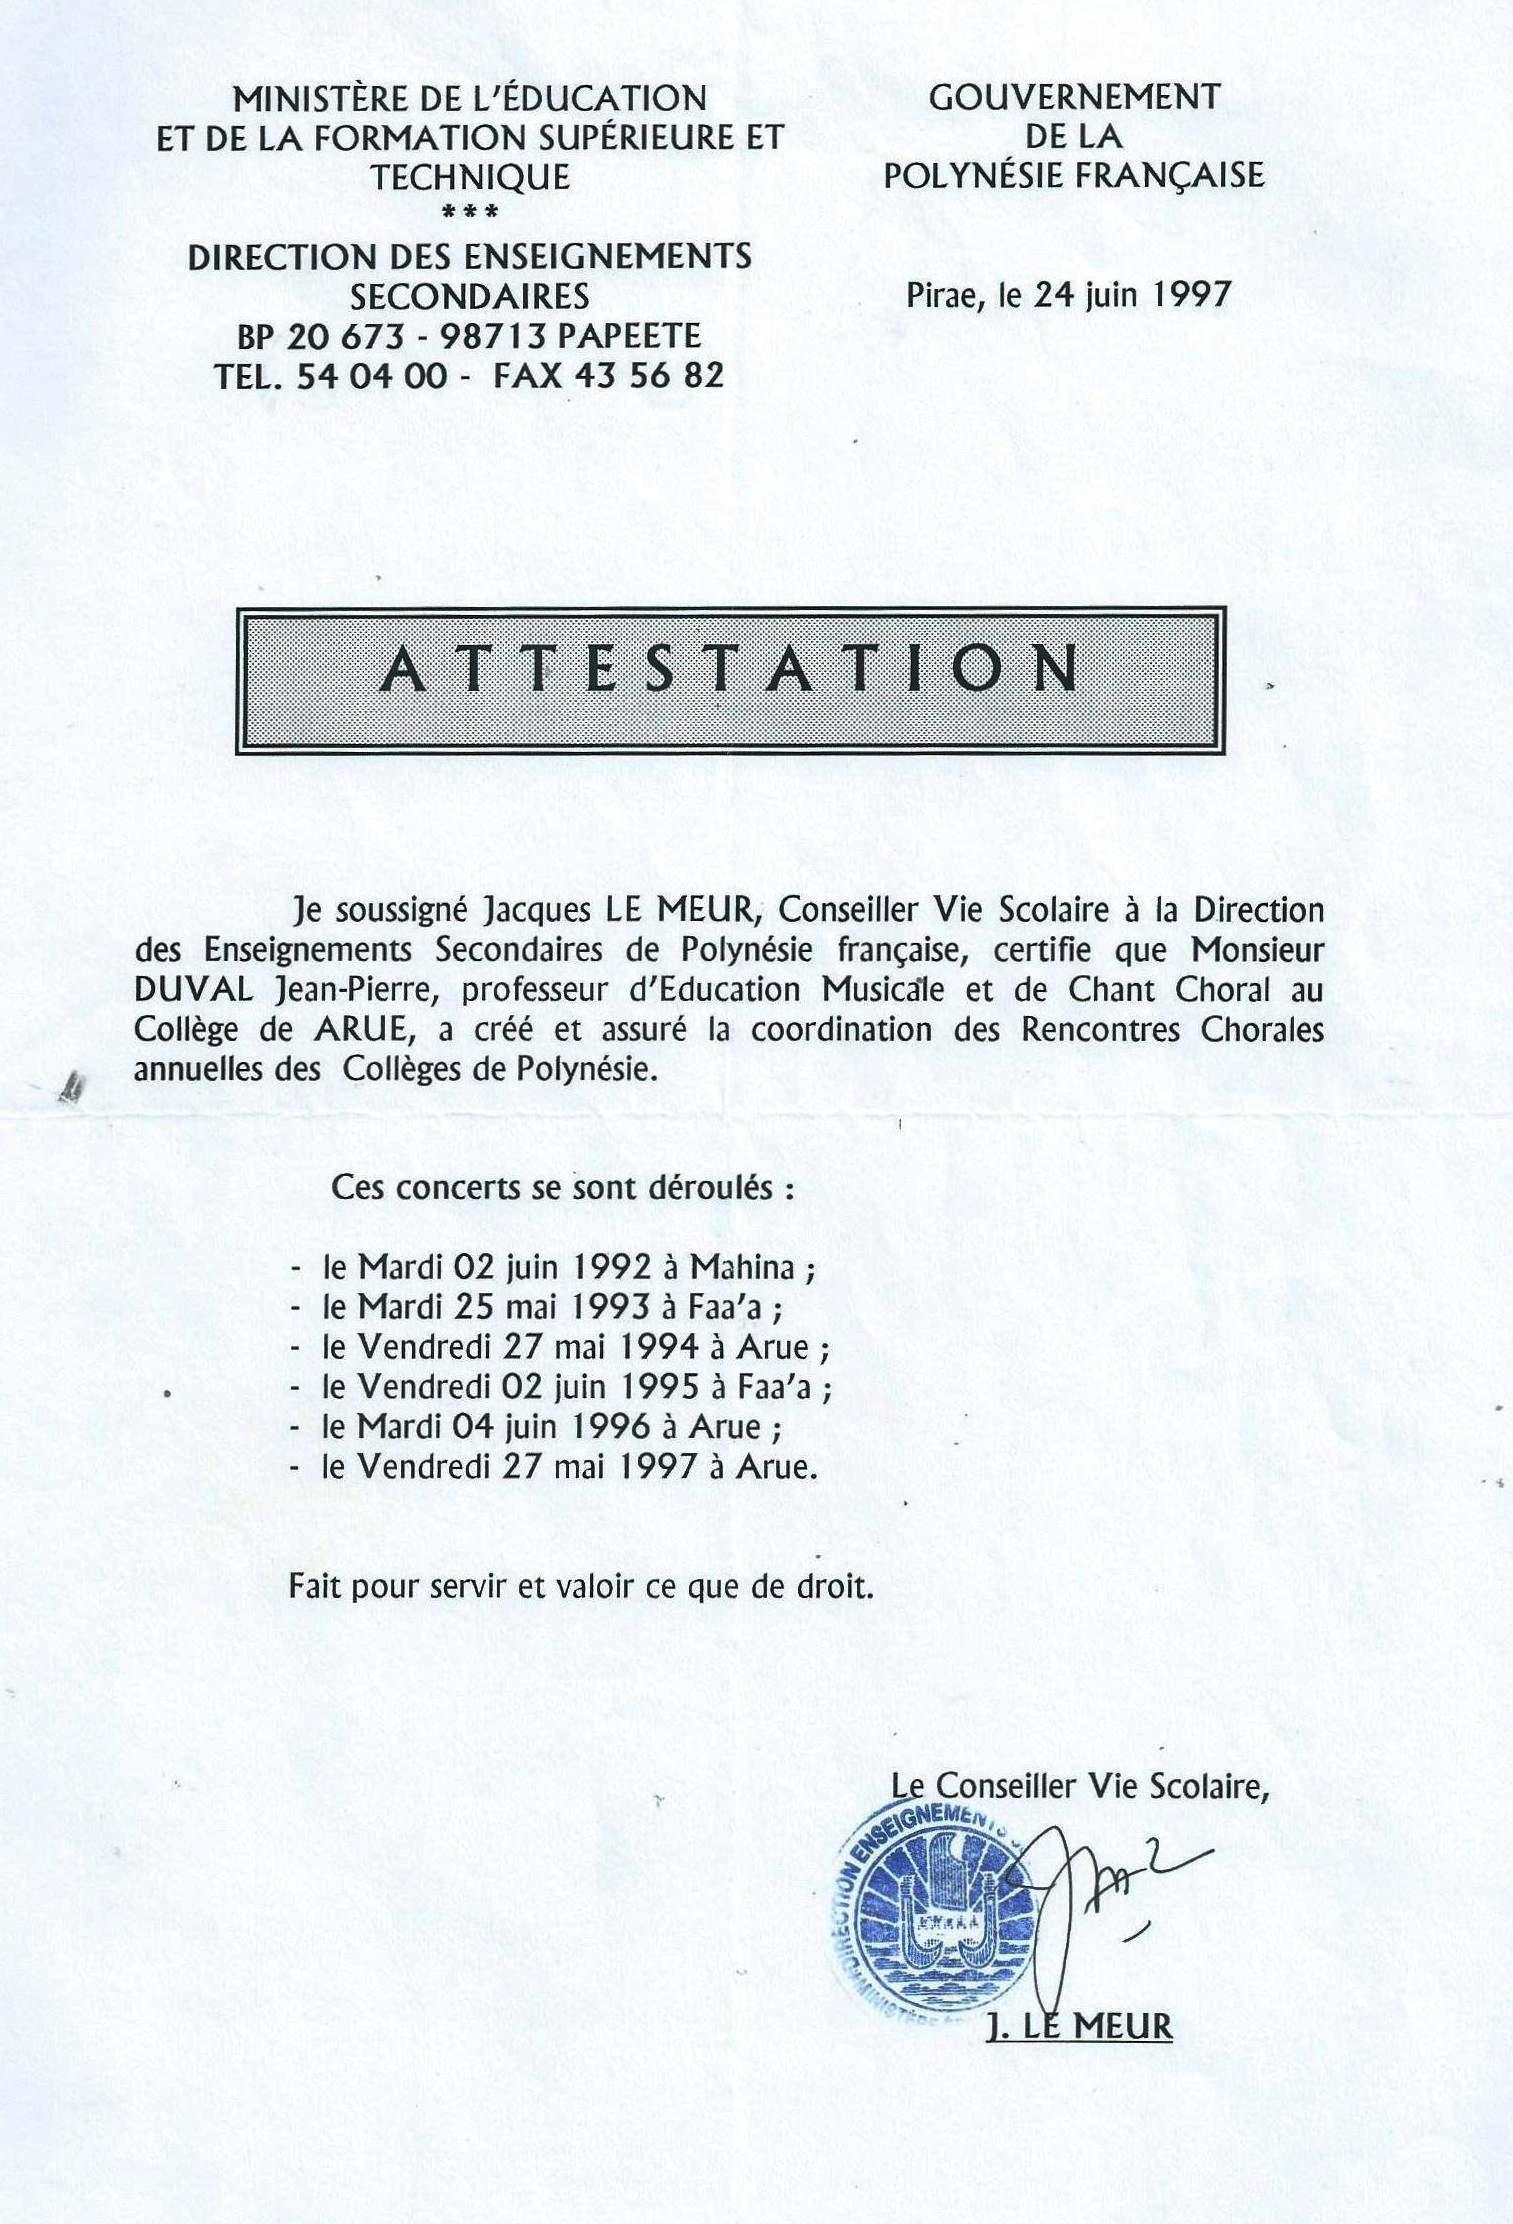 Attestation Le Meur 1997.jpg